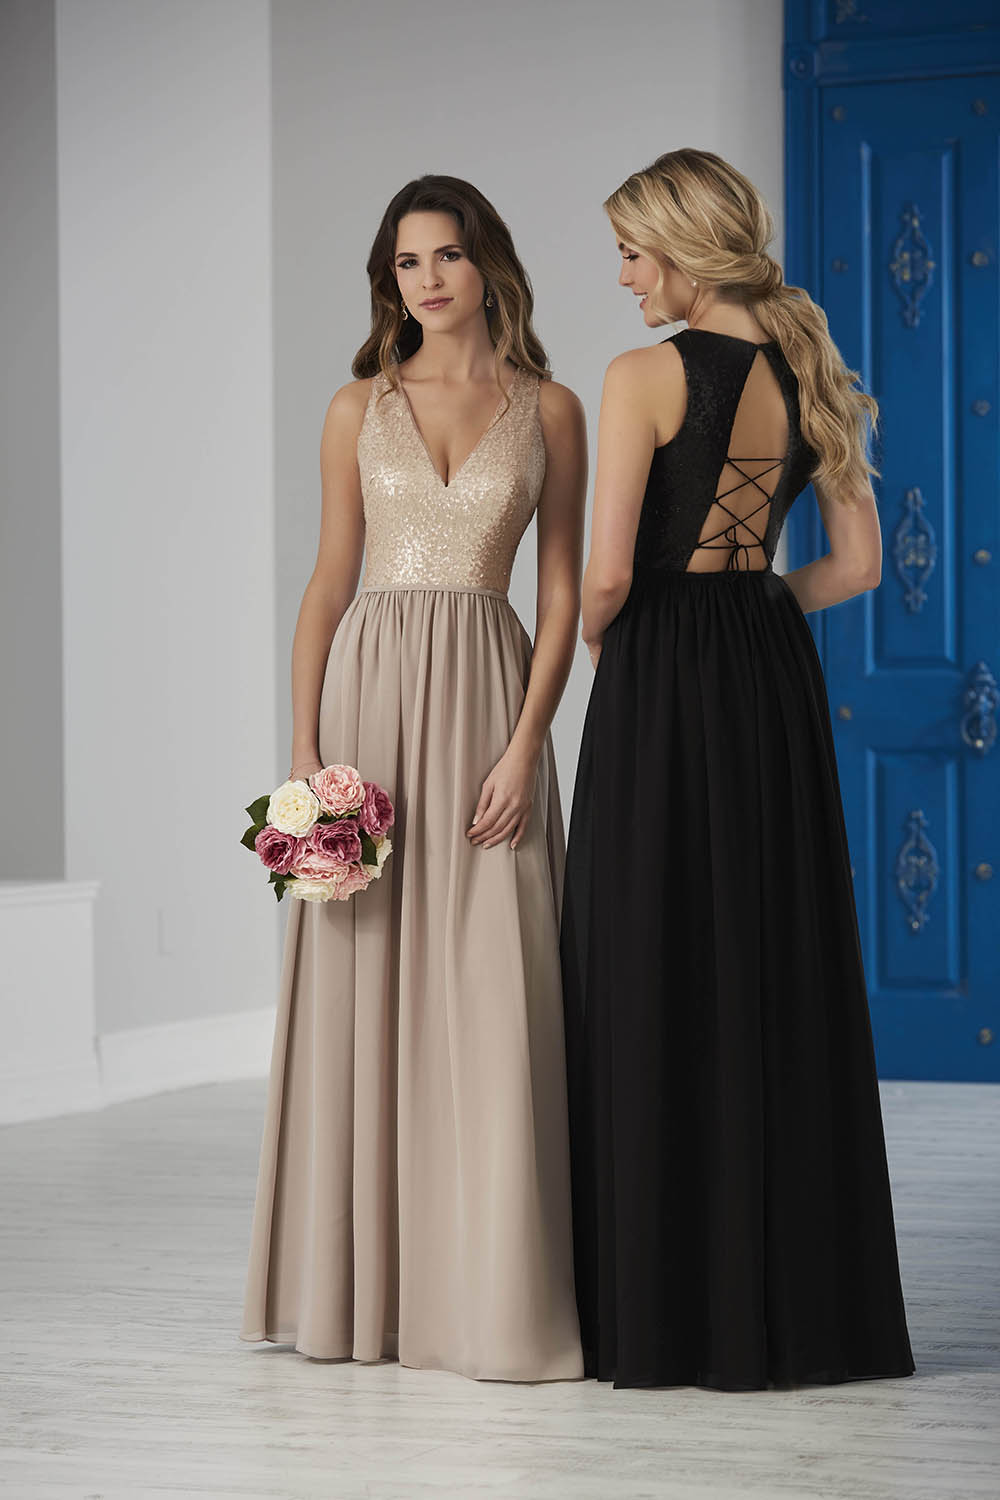 bridesmaid-dresses-jacquelin-bridals-canada-26205